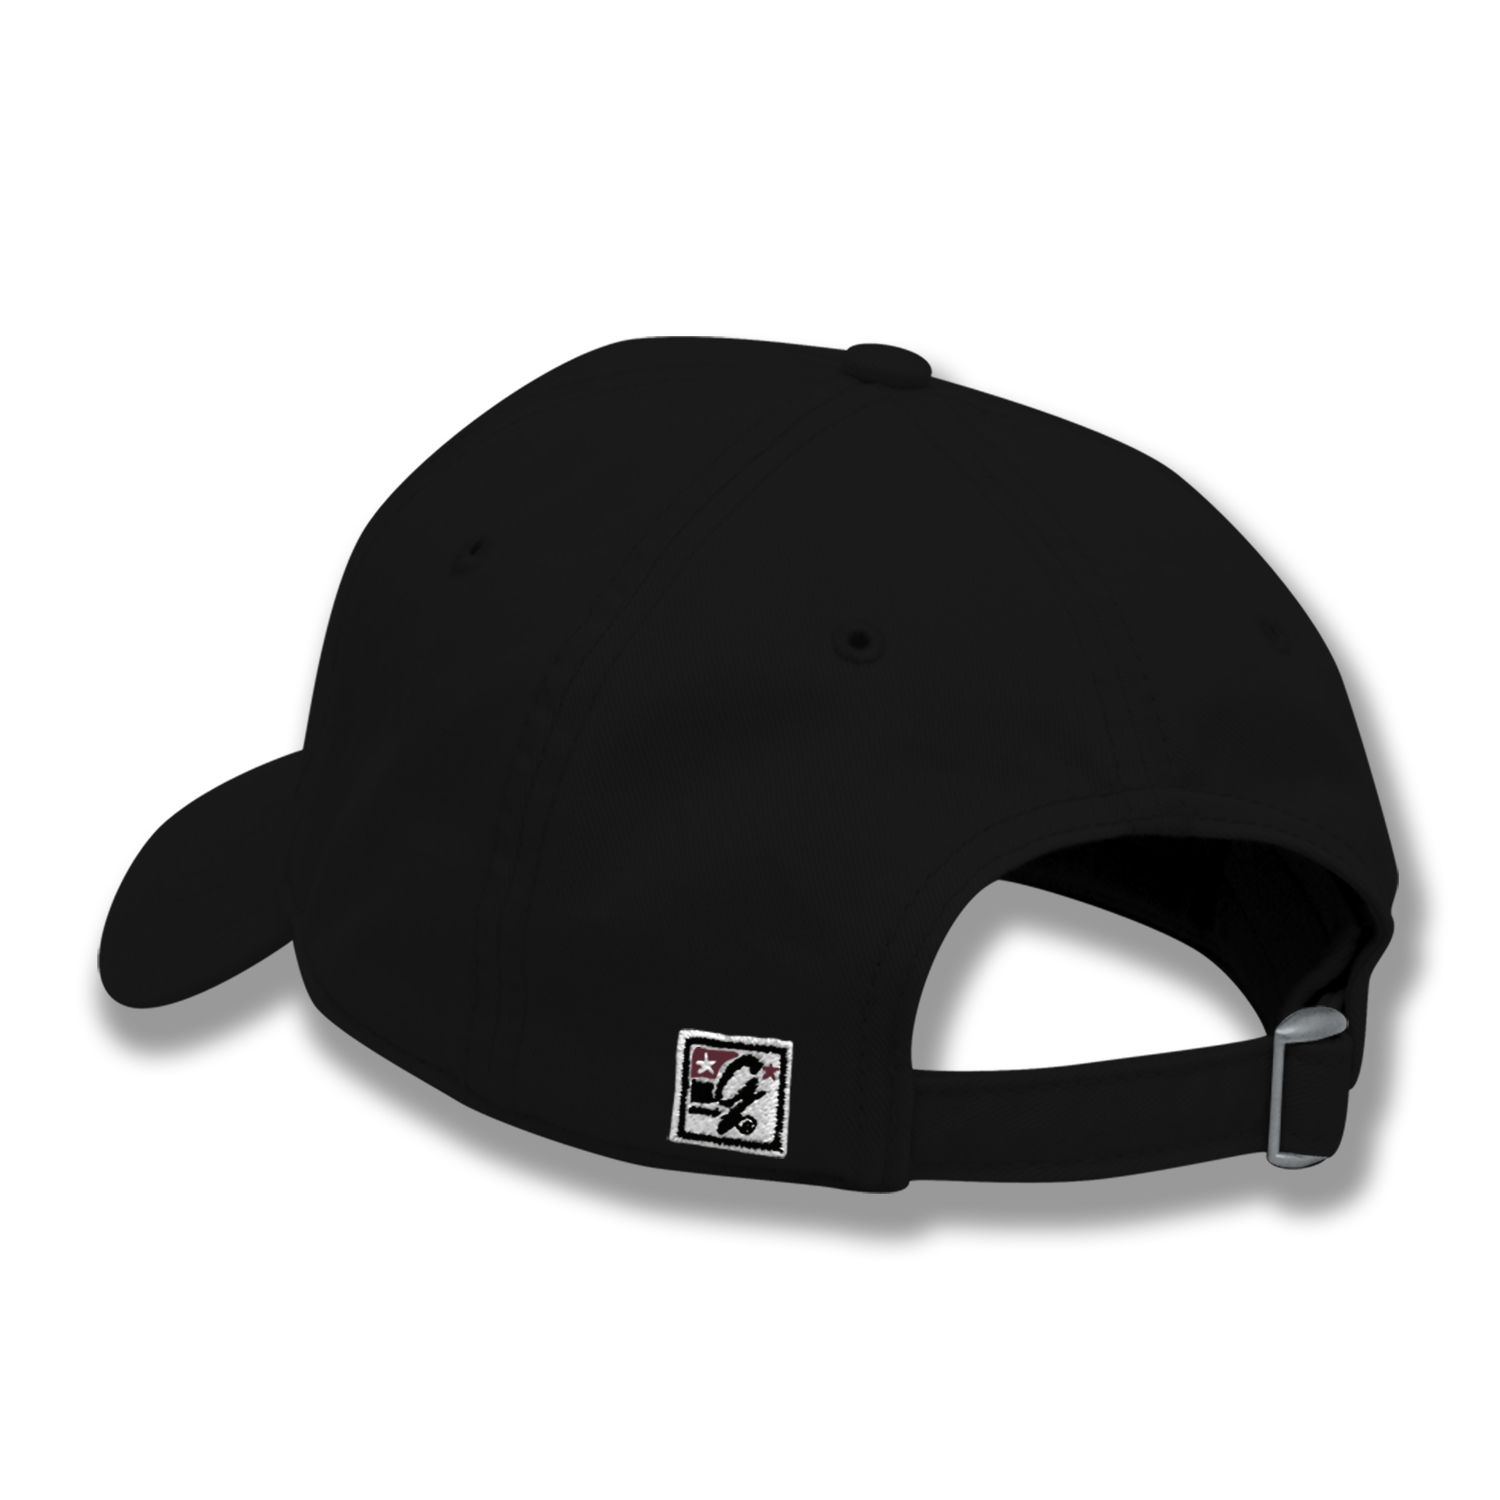 Alternative Image for the THE GAME® SIU SALUKIS BLACK G19 HAT product